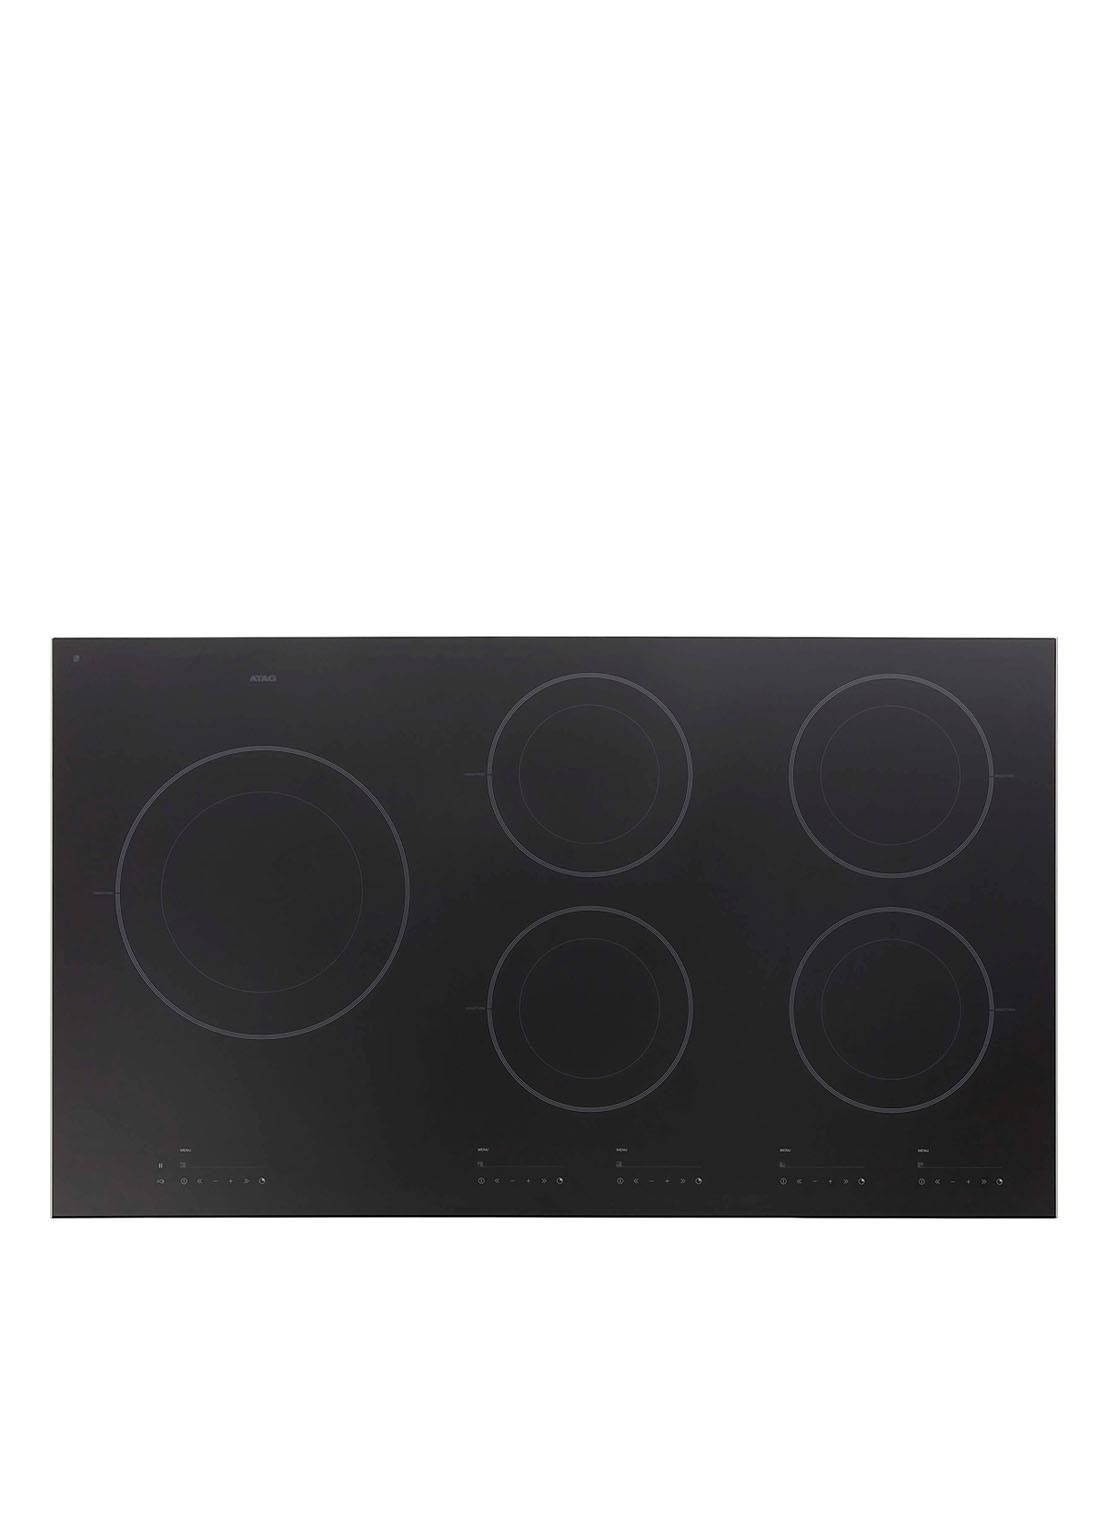 atag Table de cuisson à induction avec 5 zones 80 cm HI9271M -